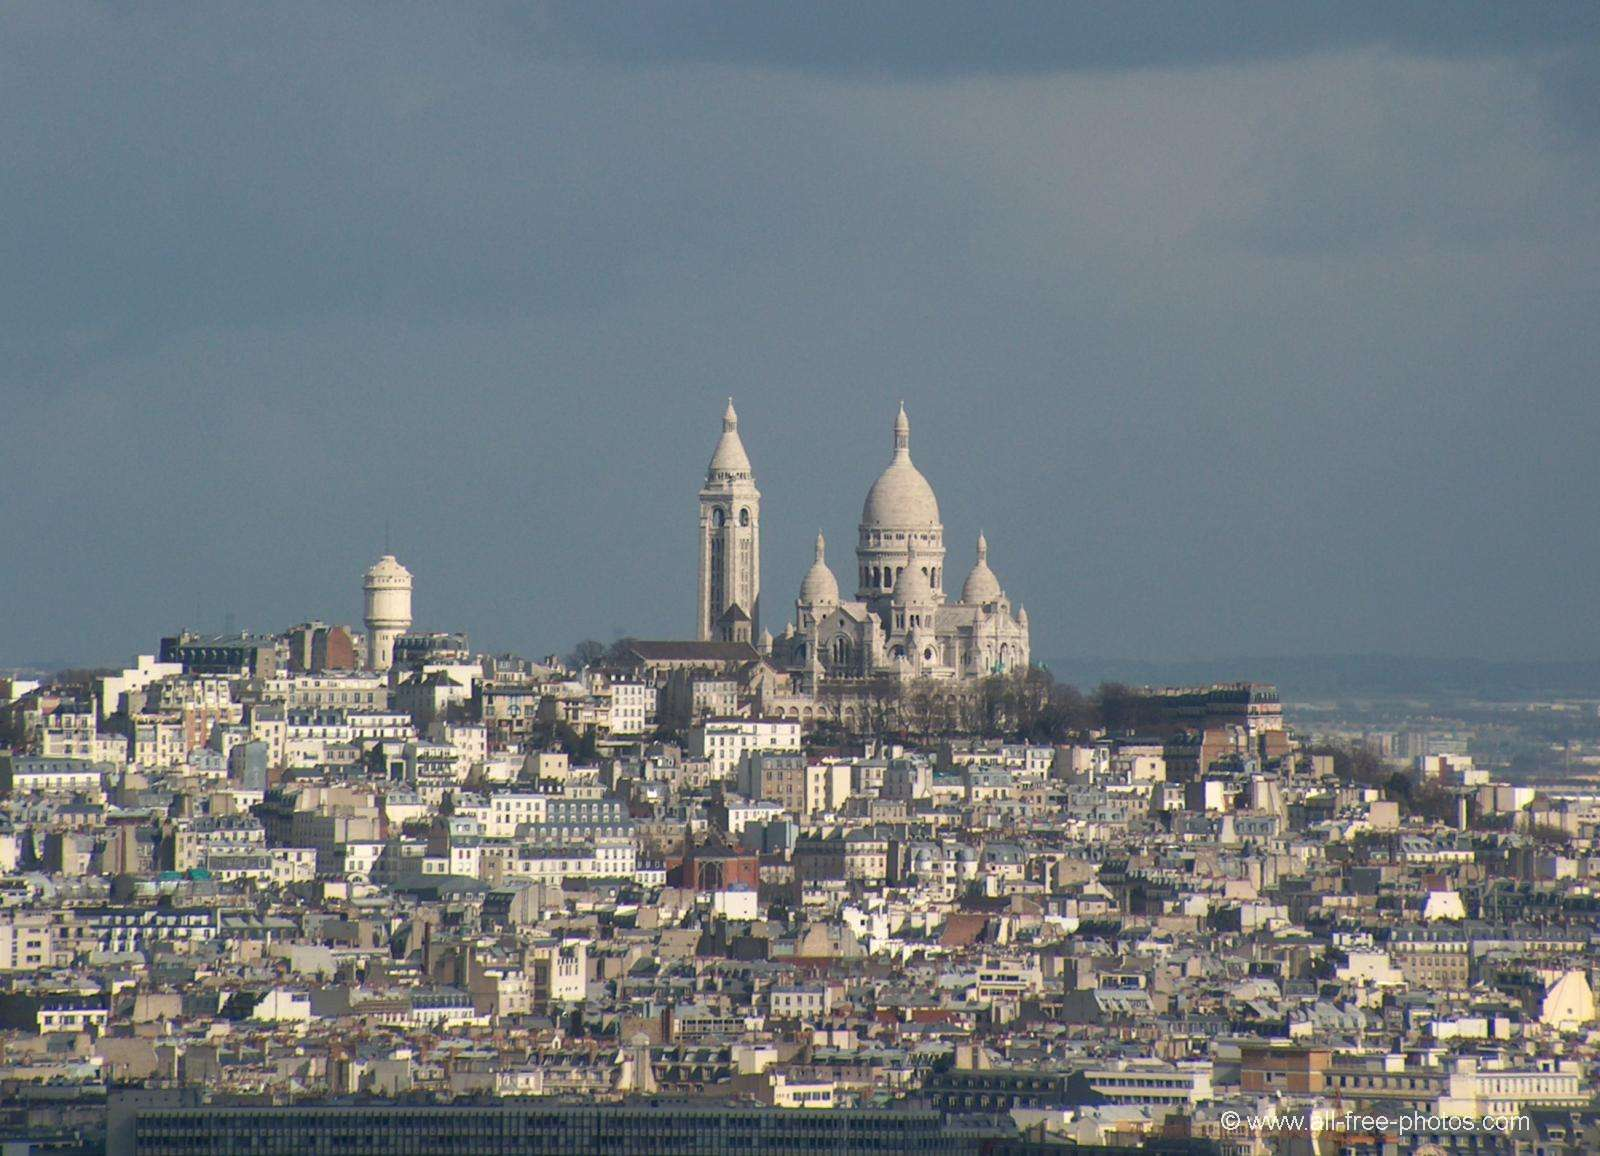 The Sacré Coeur basilica - Paris - France